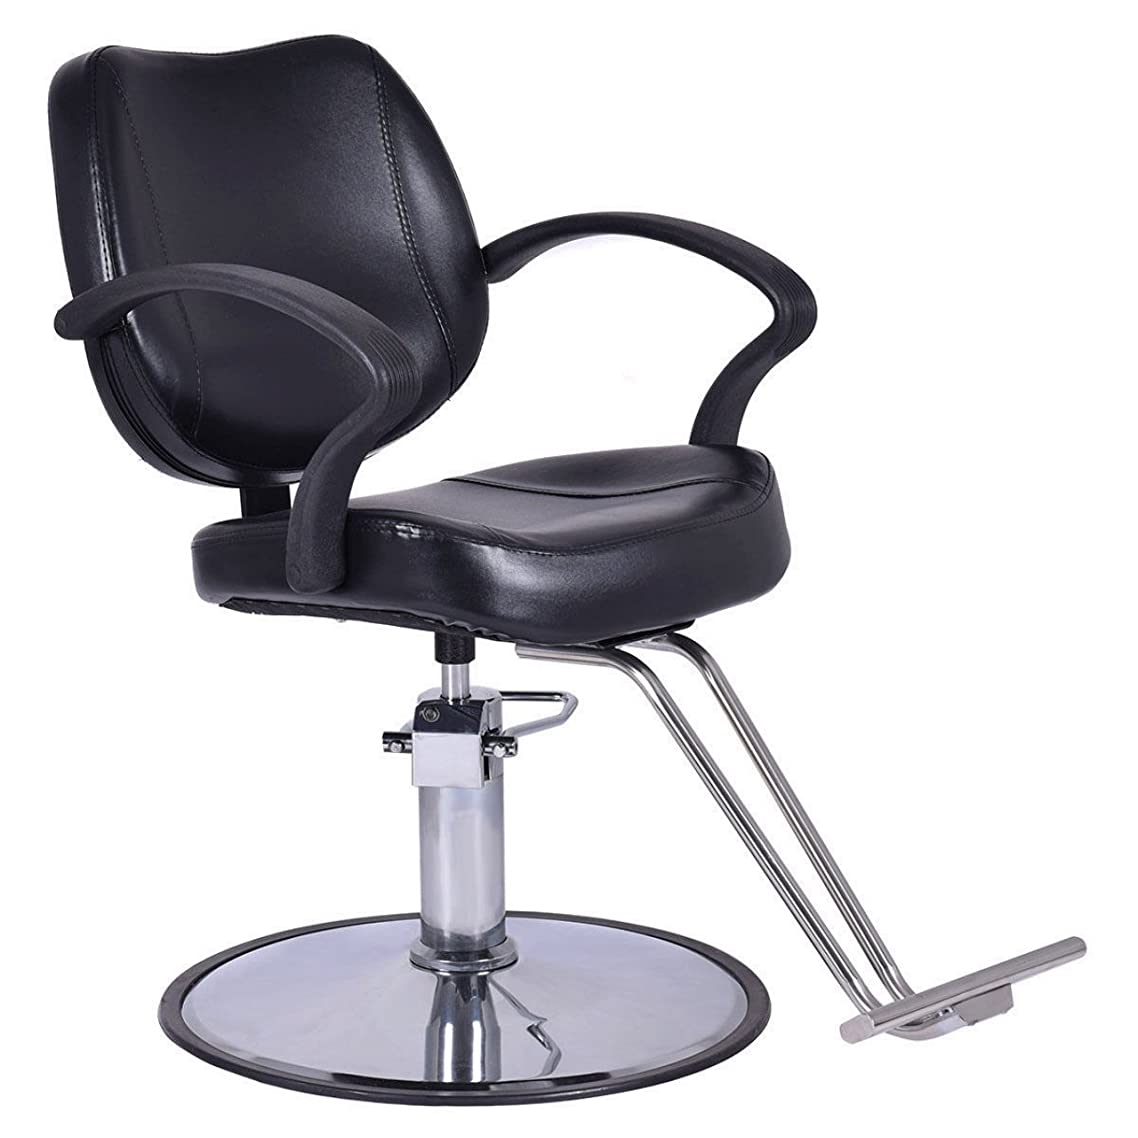 New Classic Hydraulic 360 Degree Swivel Barber Chair Salon Beauty Spa Hair Styling/ Black #835